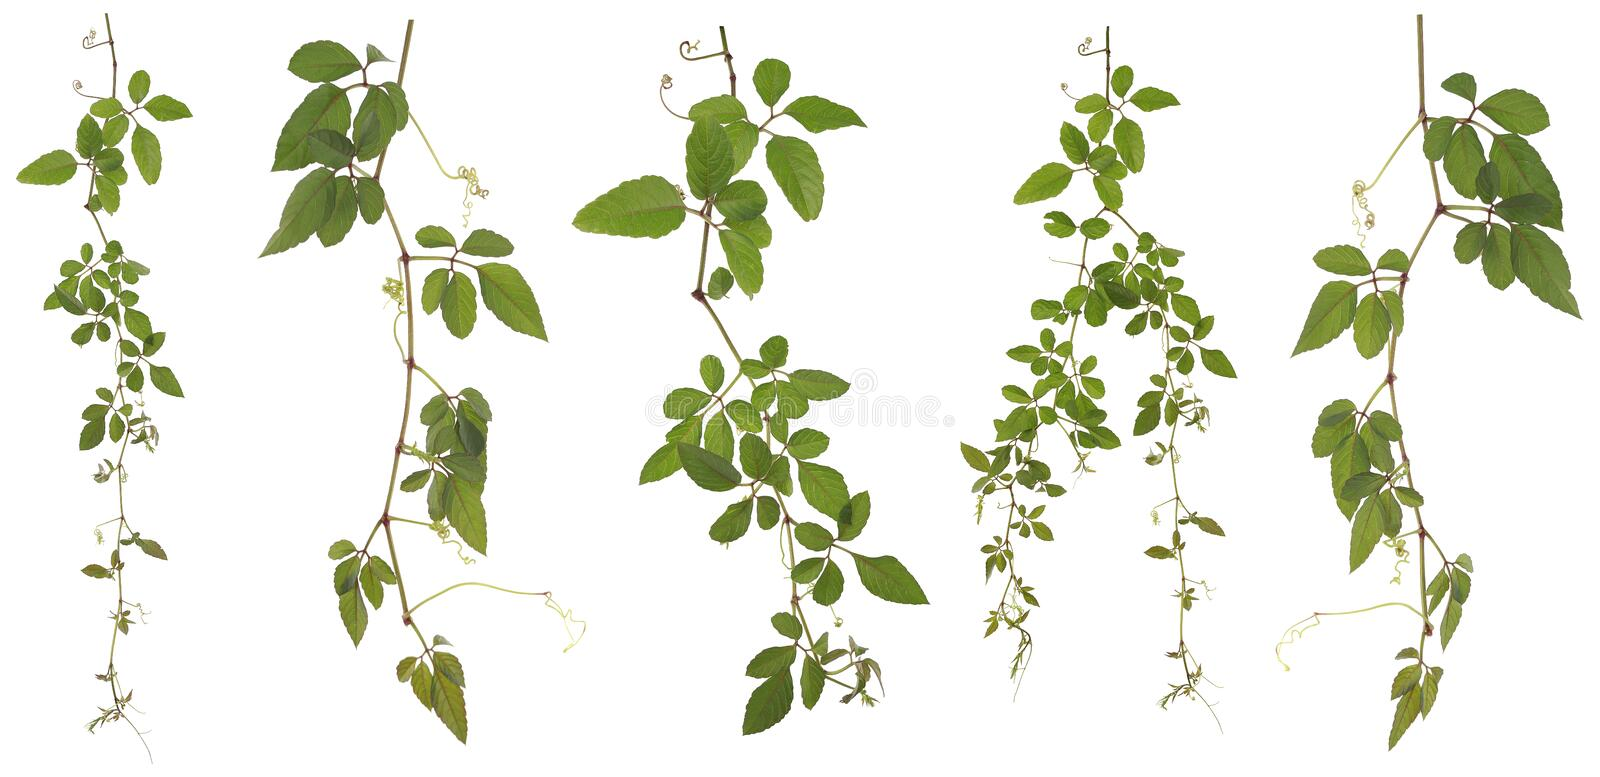 Collected Cayratia Japonica isolated on white background. Original size Full Frame of the Collected Cayratia Japonica isolated on white background Cayratia stock photos